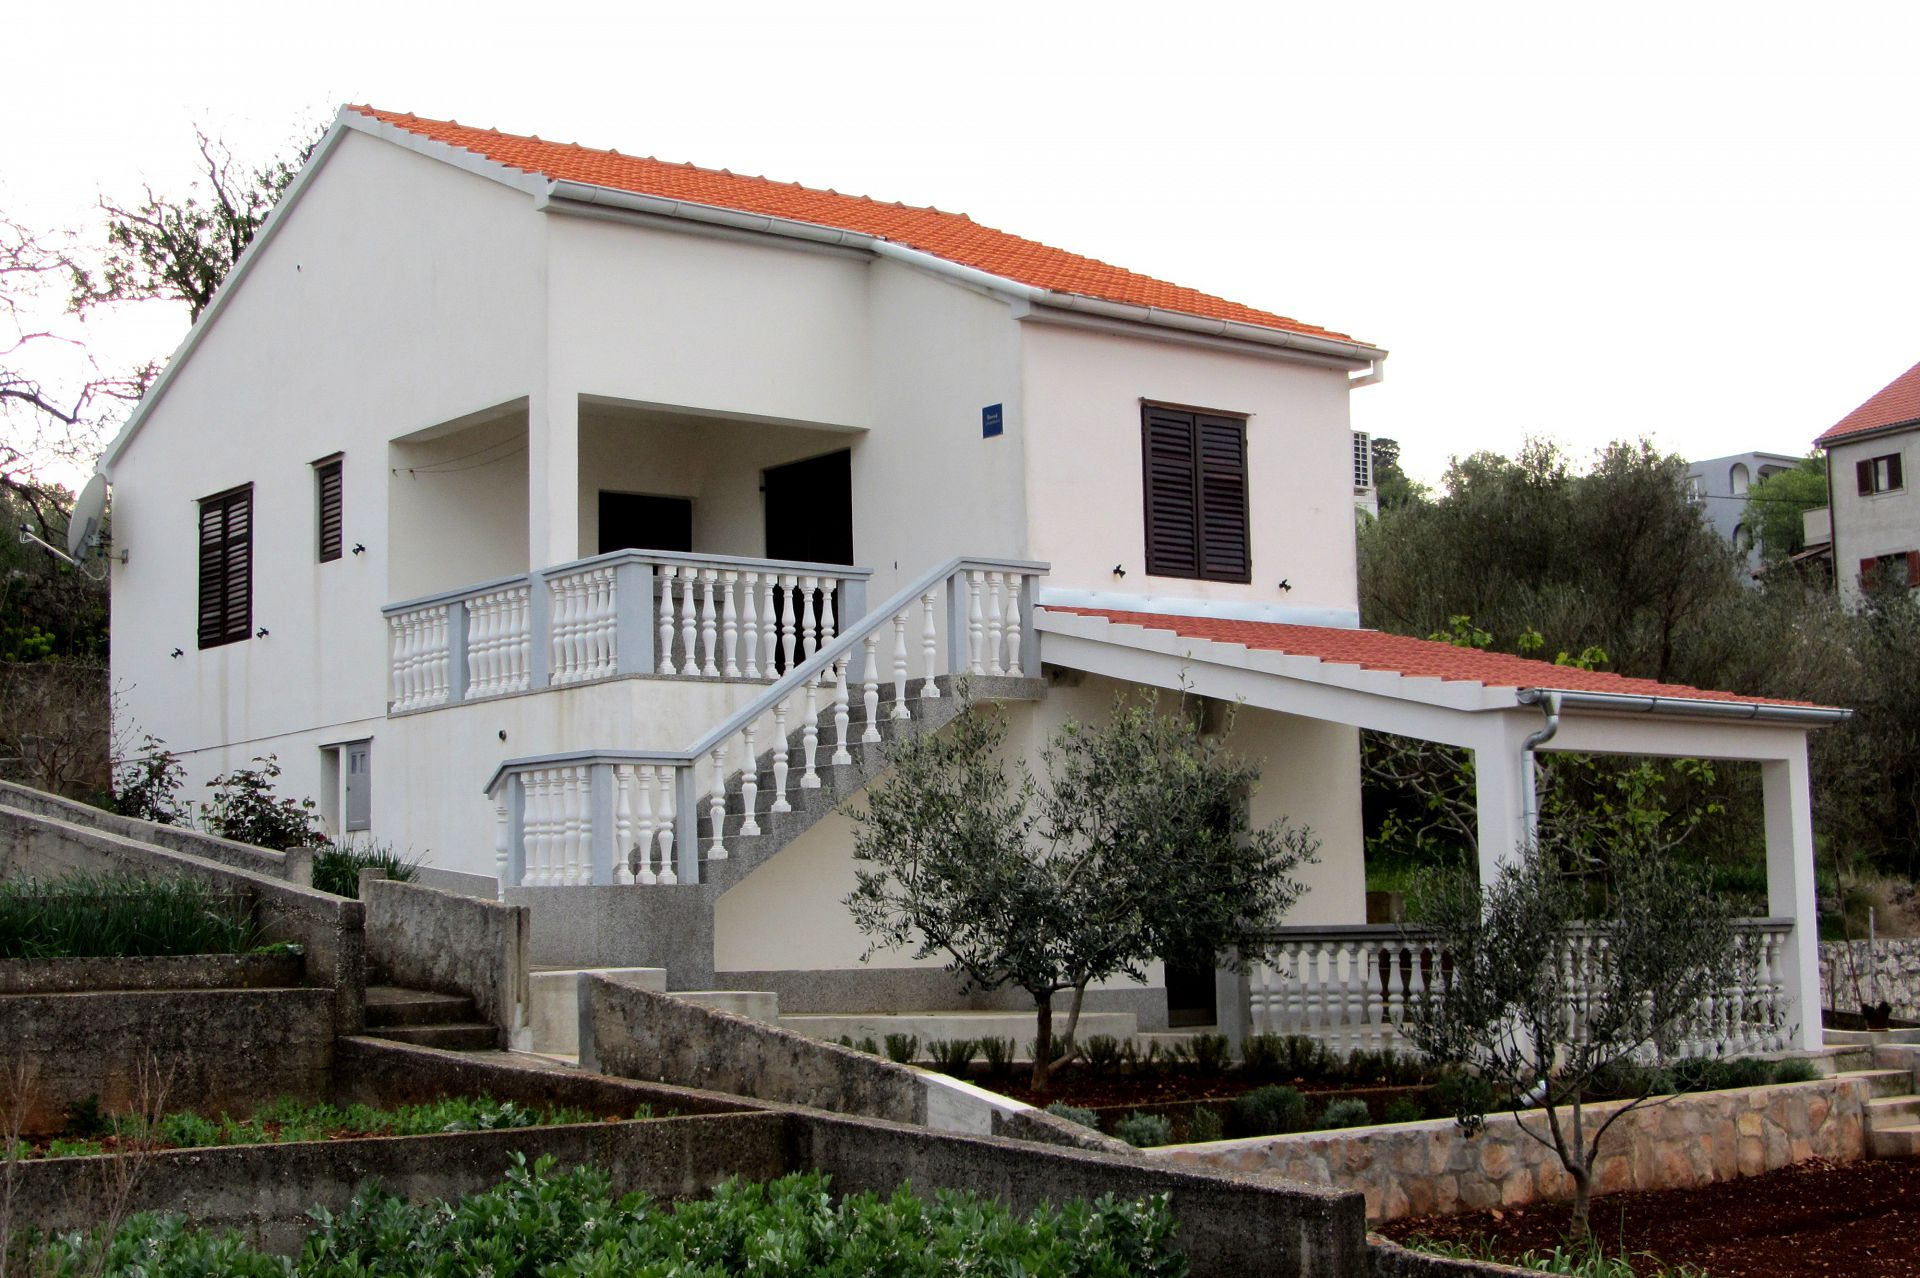 5476 - Sali - Holiday houses, villas Croatia